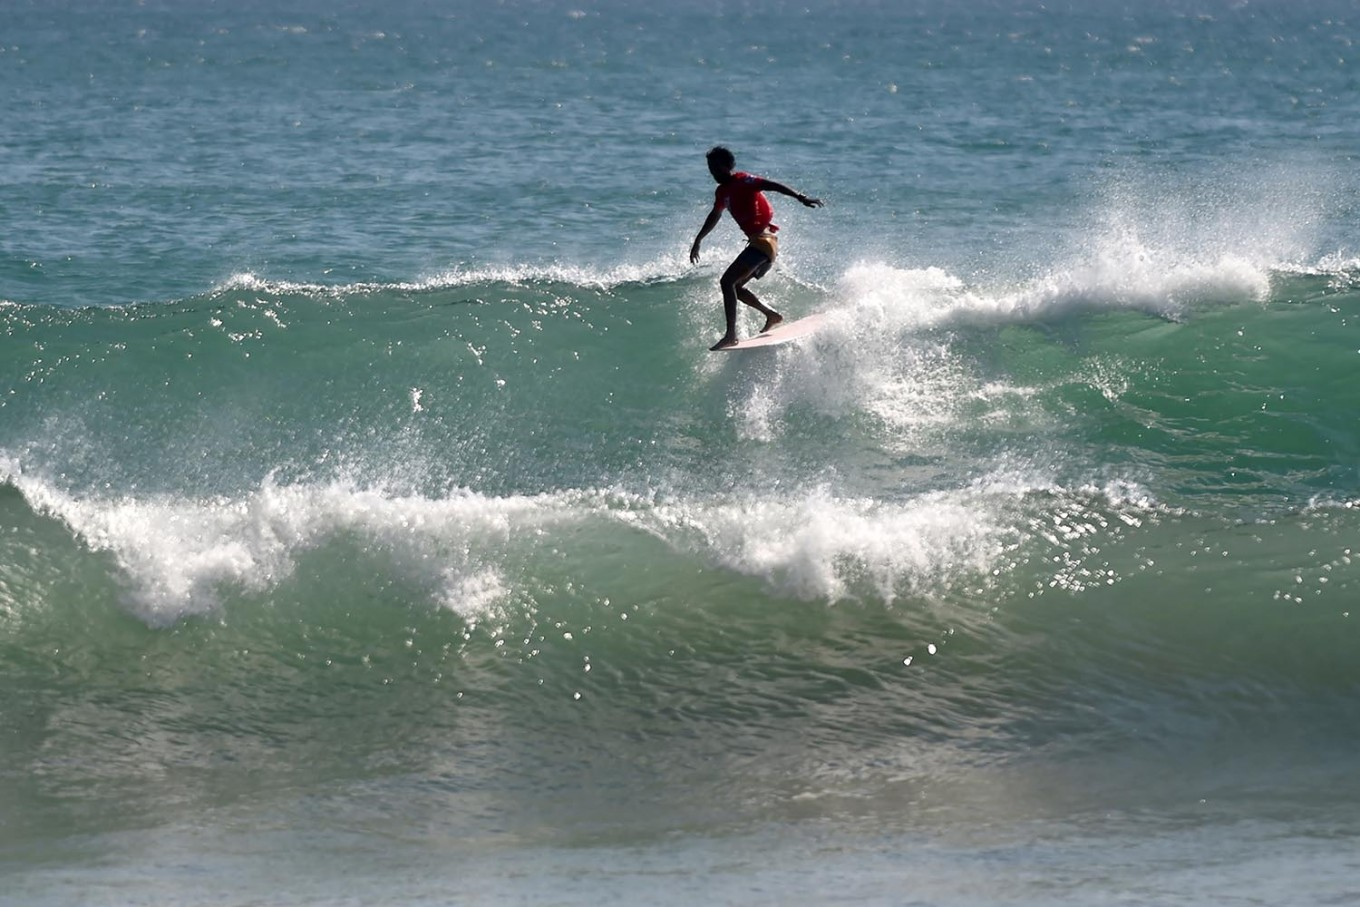 Bali to host 2019 World Surf League Champions Tour